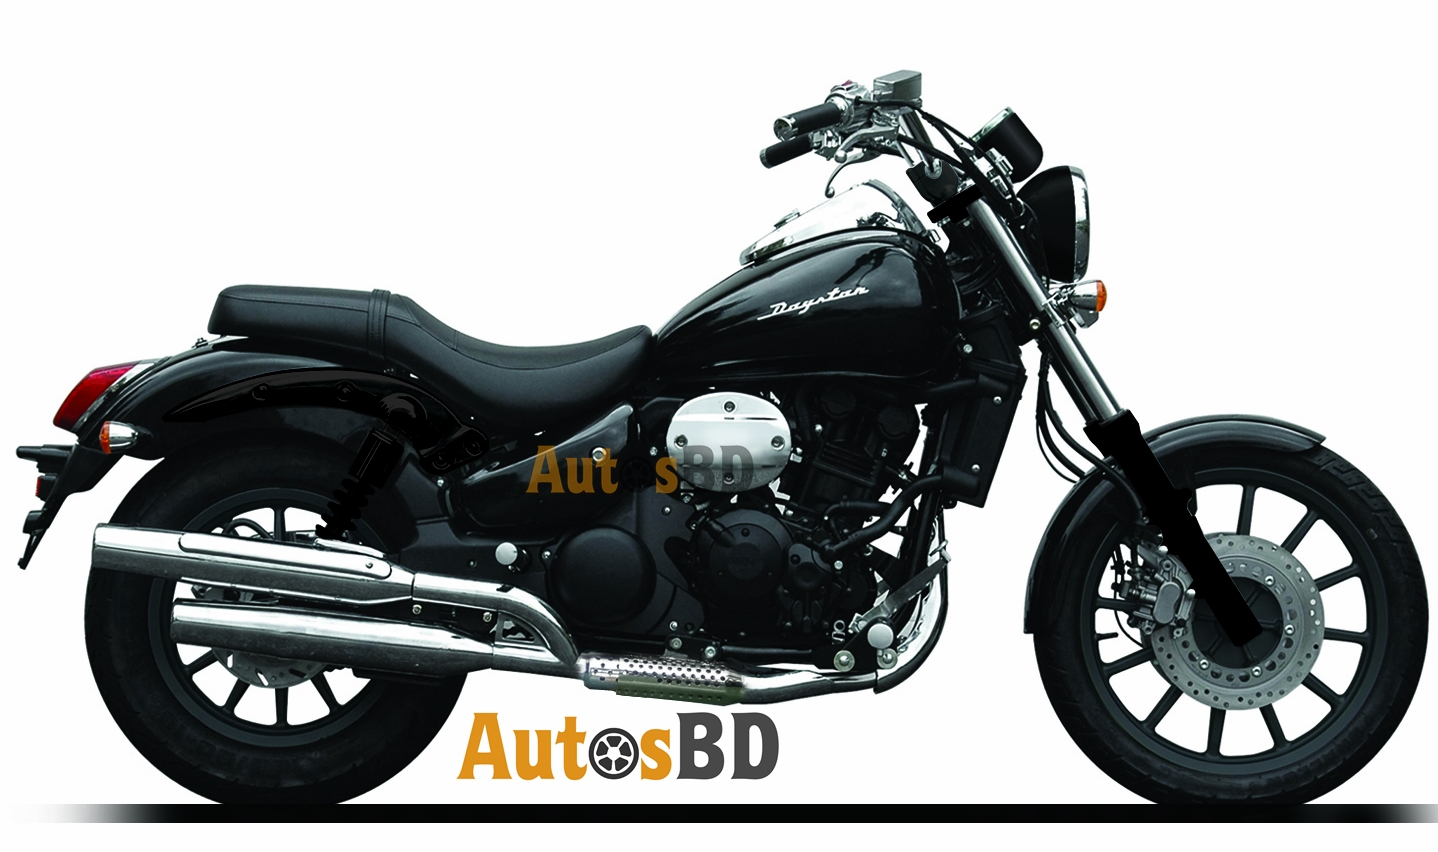 Daelim Daystar 2017 Motorcycle Specification